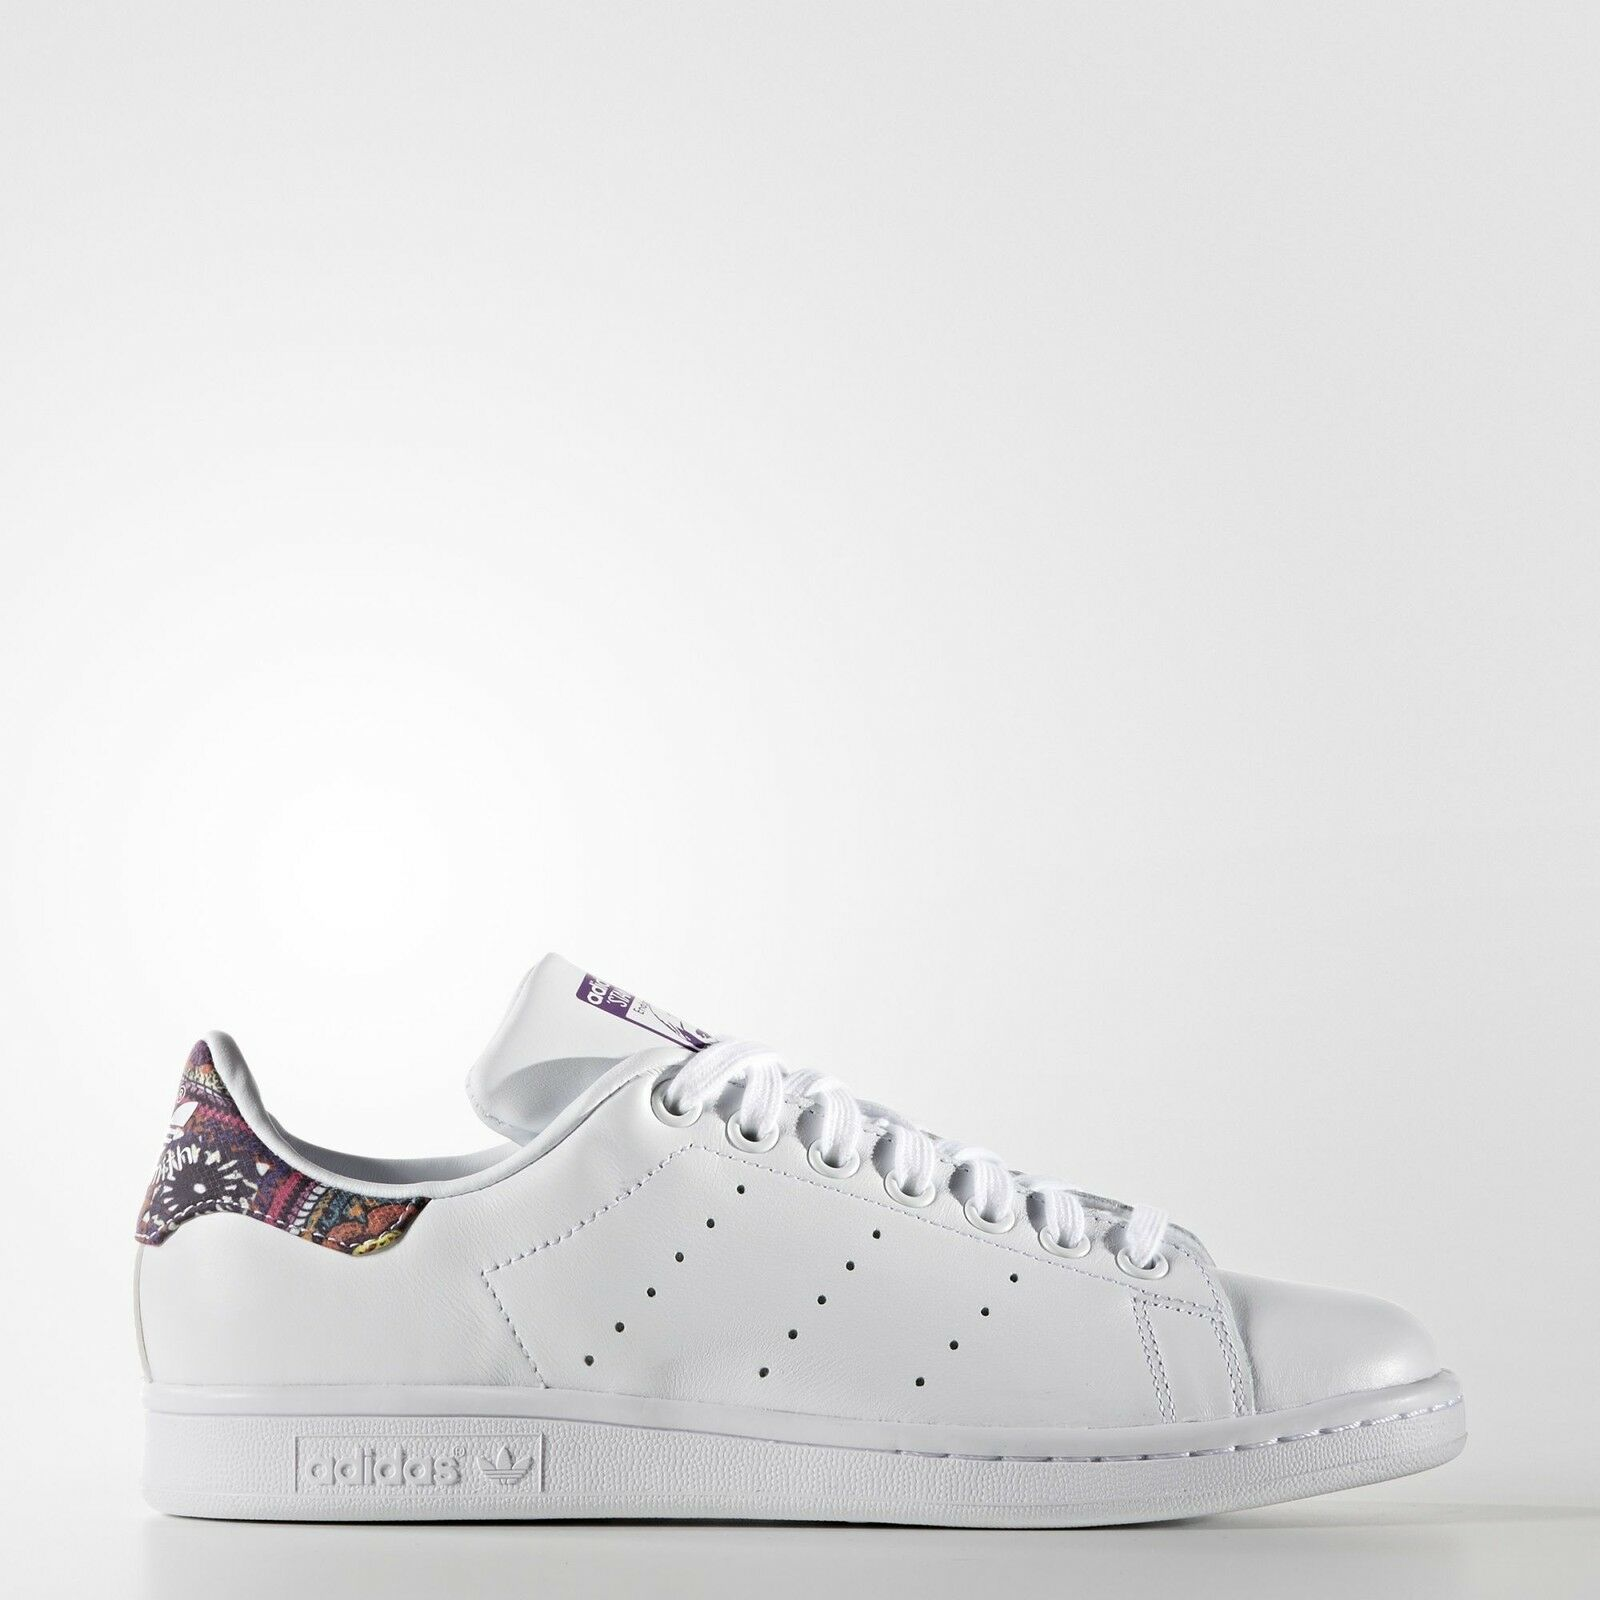 Cross-border:- Adidas Originals Women's Stan Smith Leather White Comfort Shoes low price